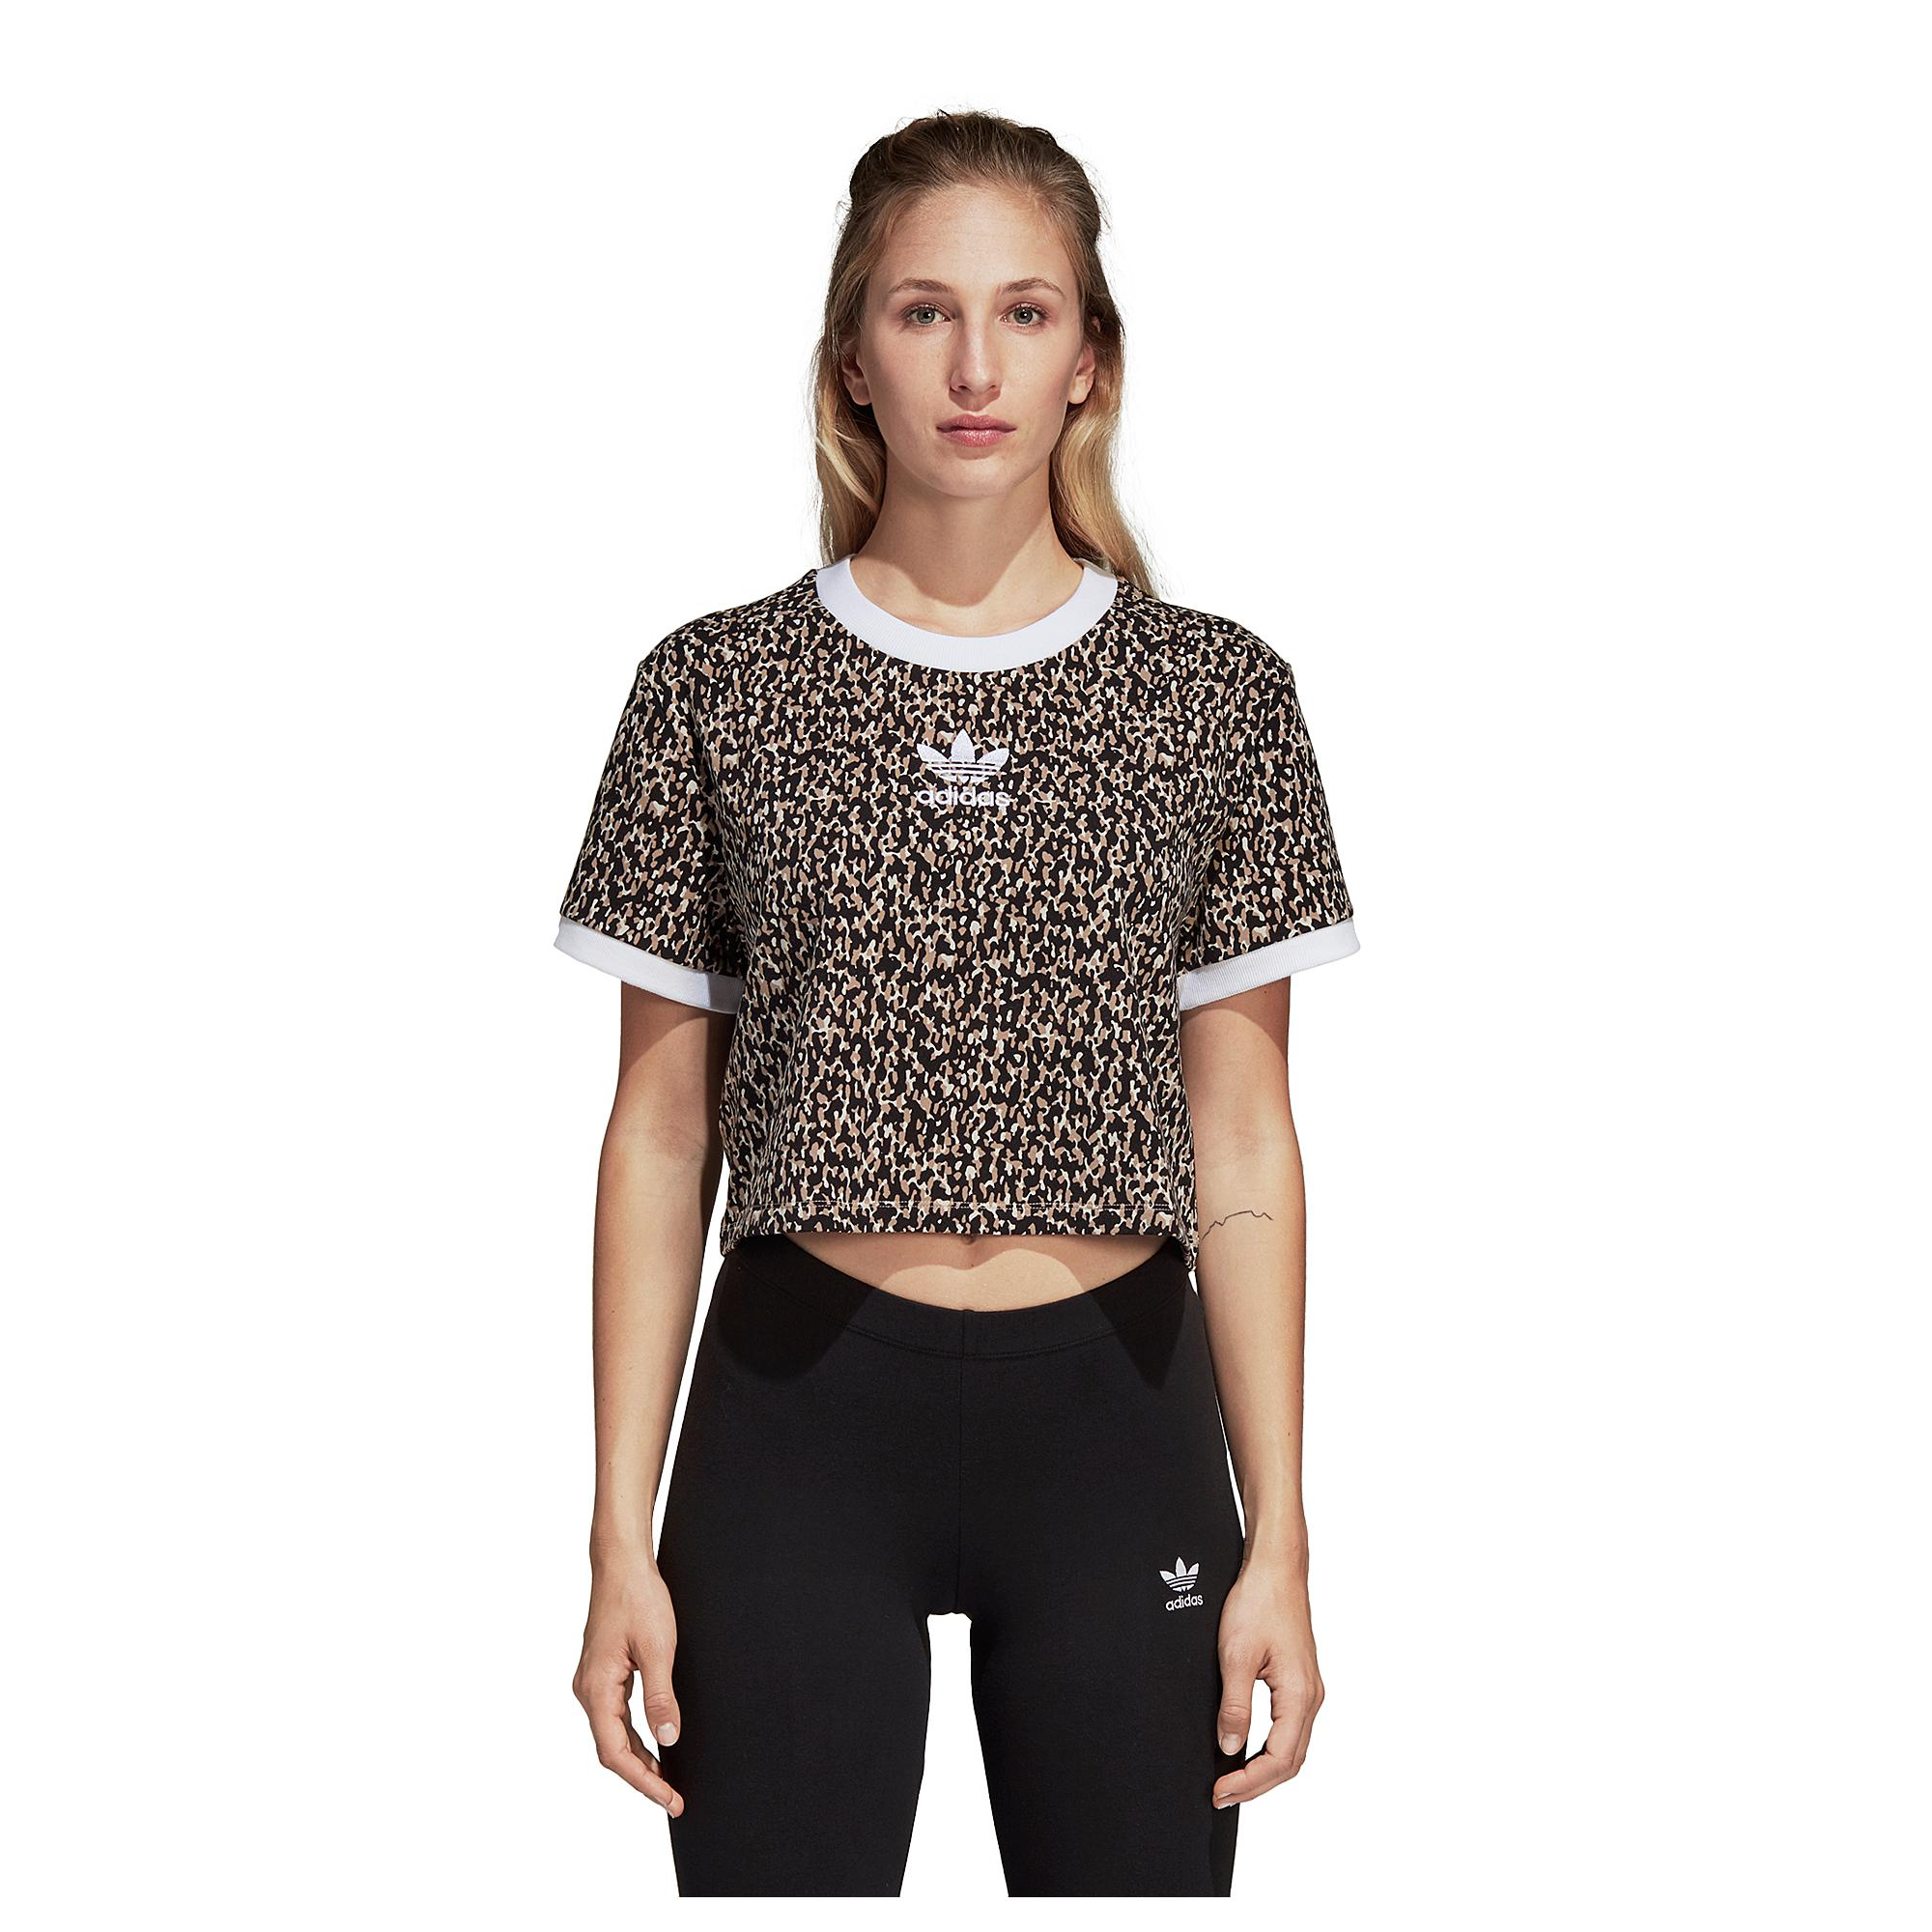 info for c1c2d 21953 adidas Originals. Womens Black Leoflage Cropped T-shirt